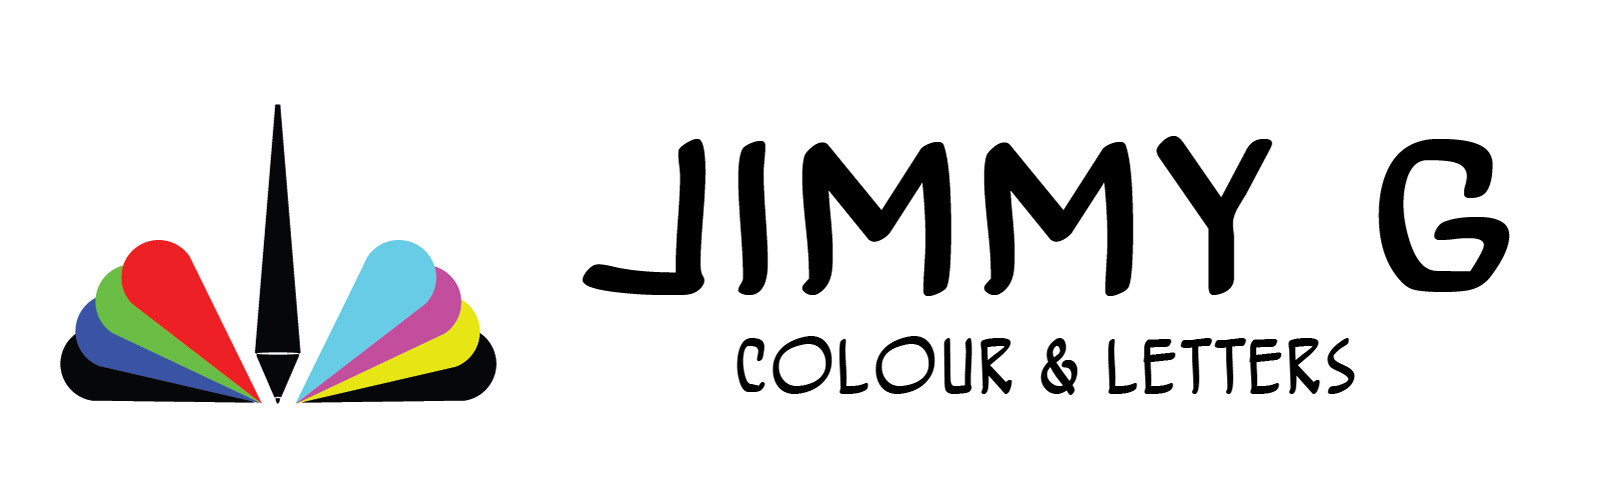 Jimmy G colour